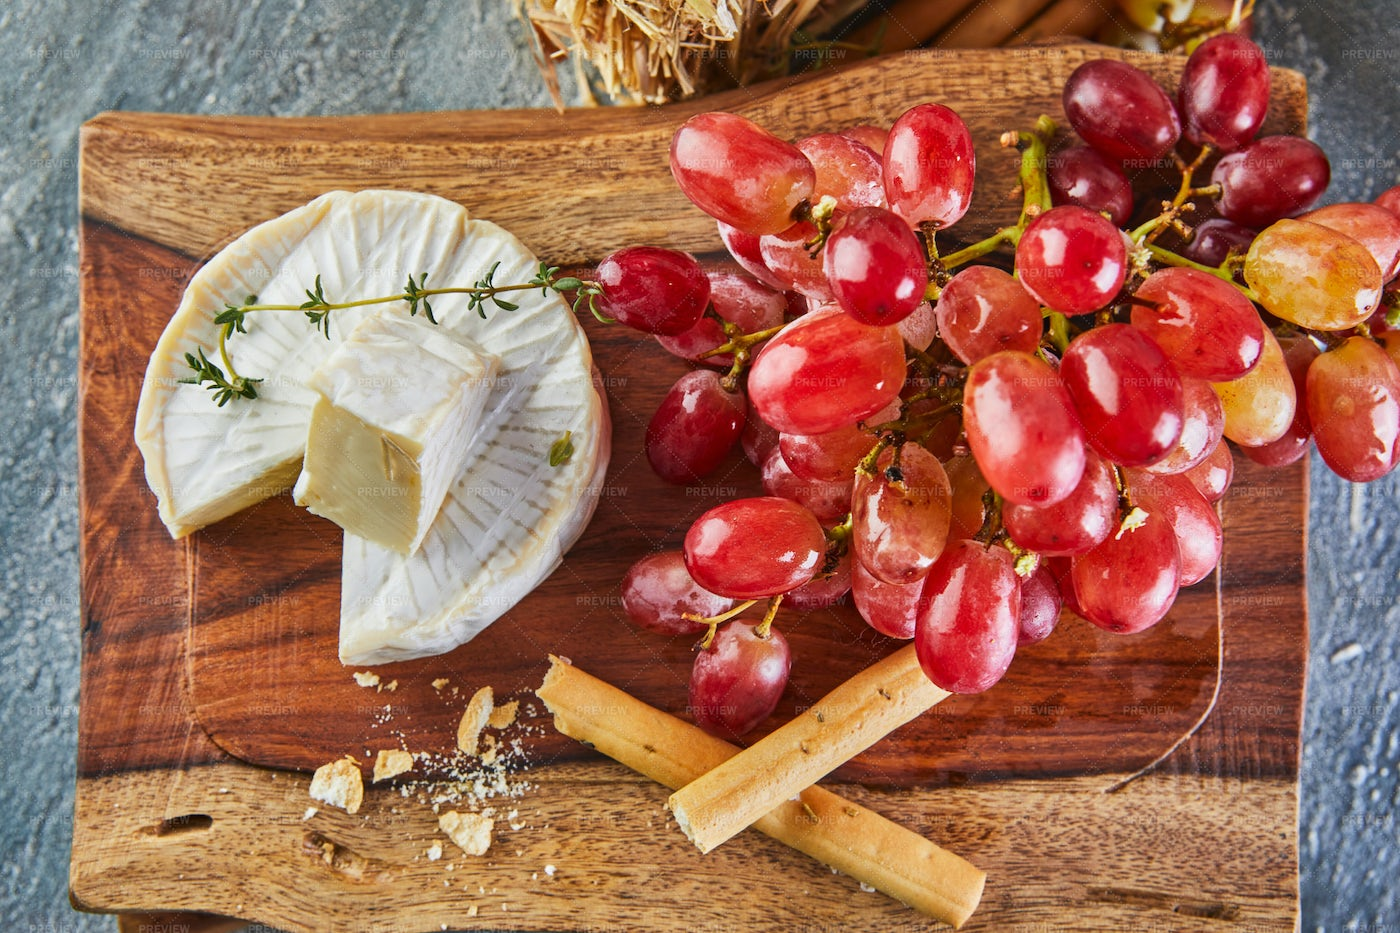 Brie Cheese And Grapes: Stock Photos